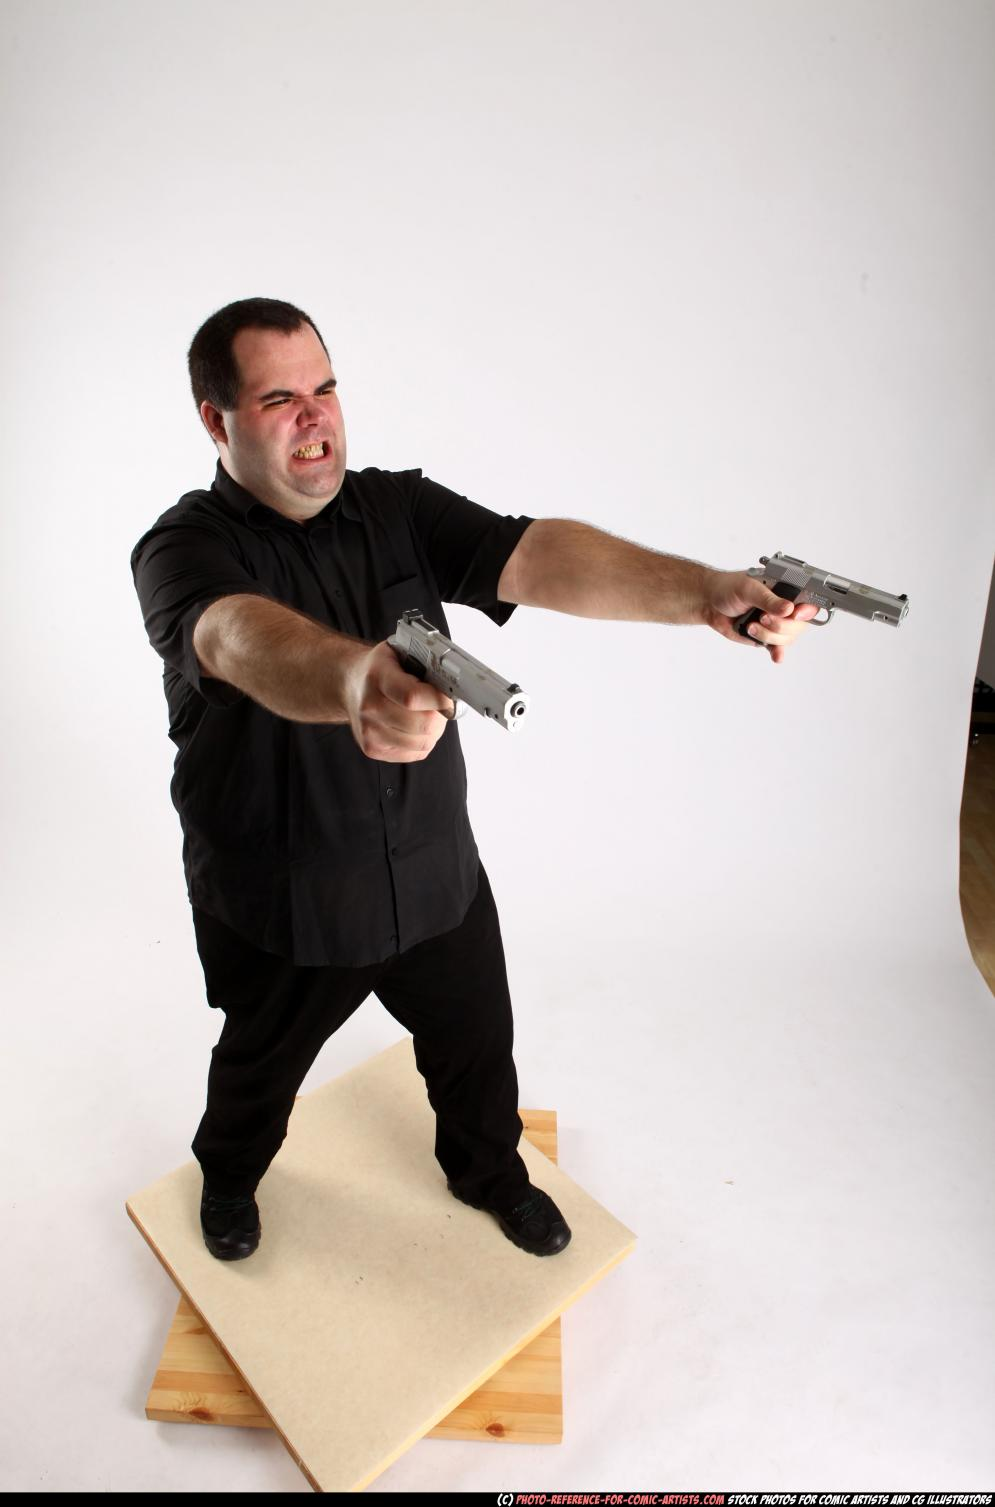 Image from Comic Artist - Furious Mobster Shooting Dual Guns - 226362012_06_mobster_dual_guns_pose4_01_a.jpg